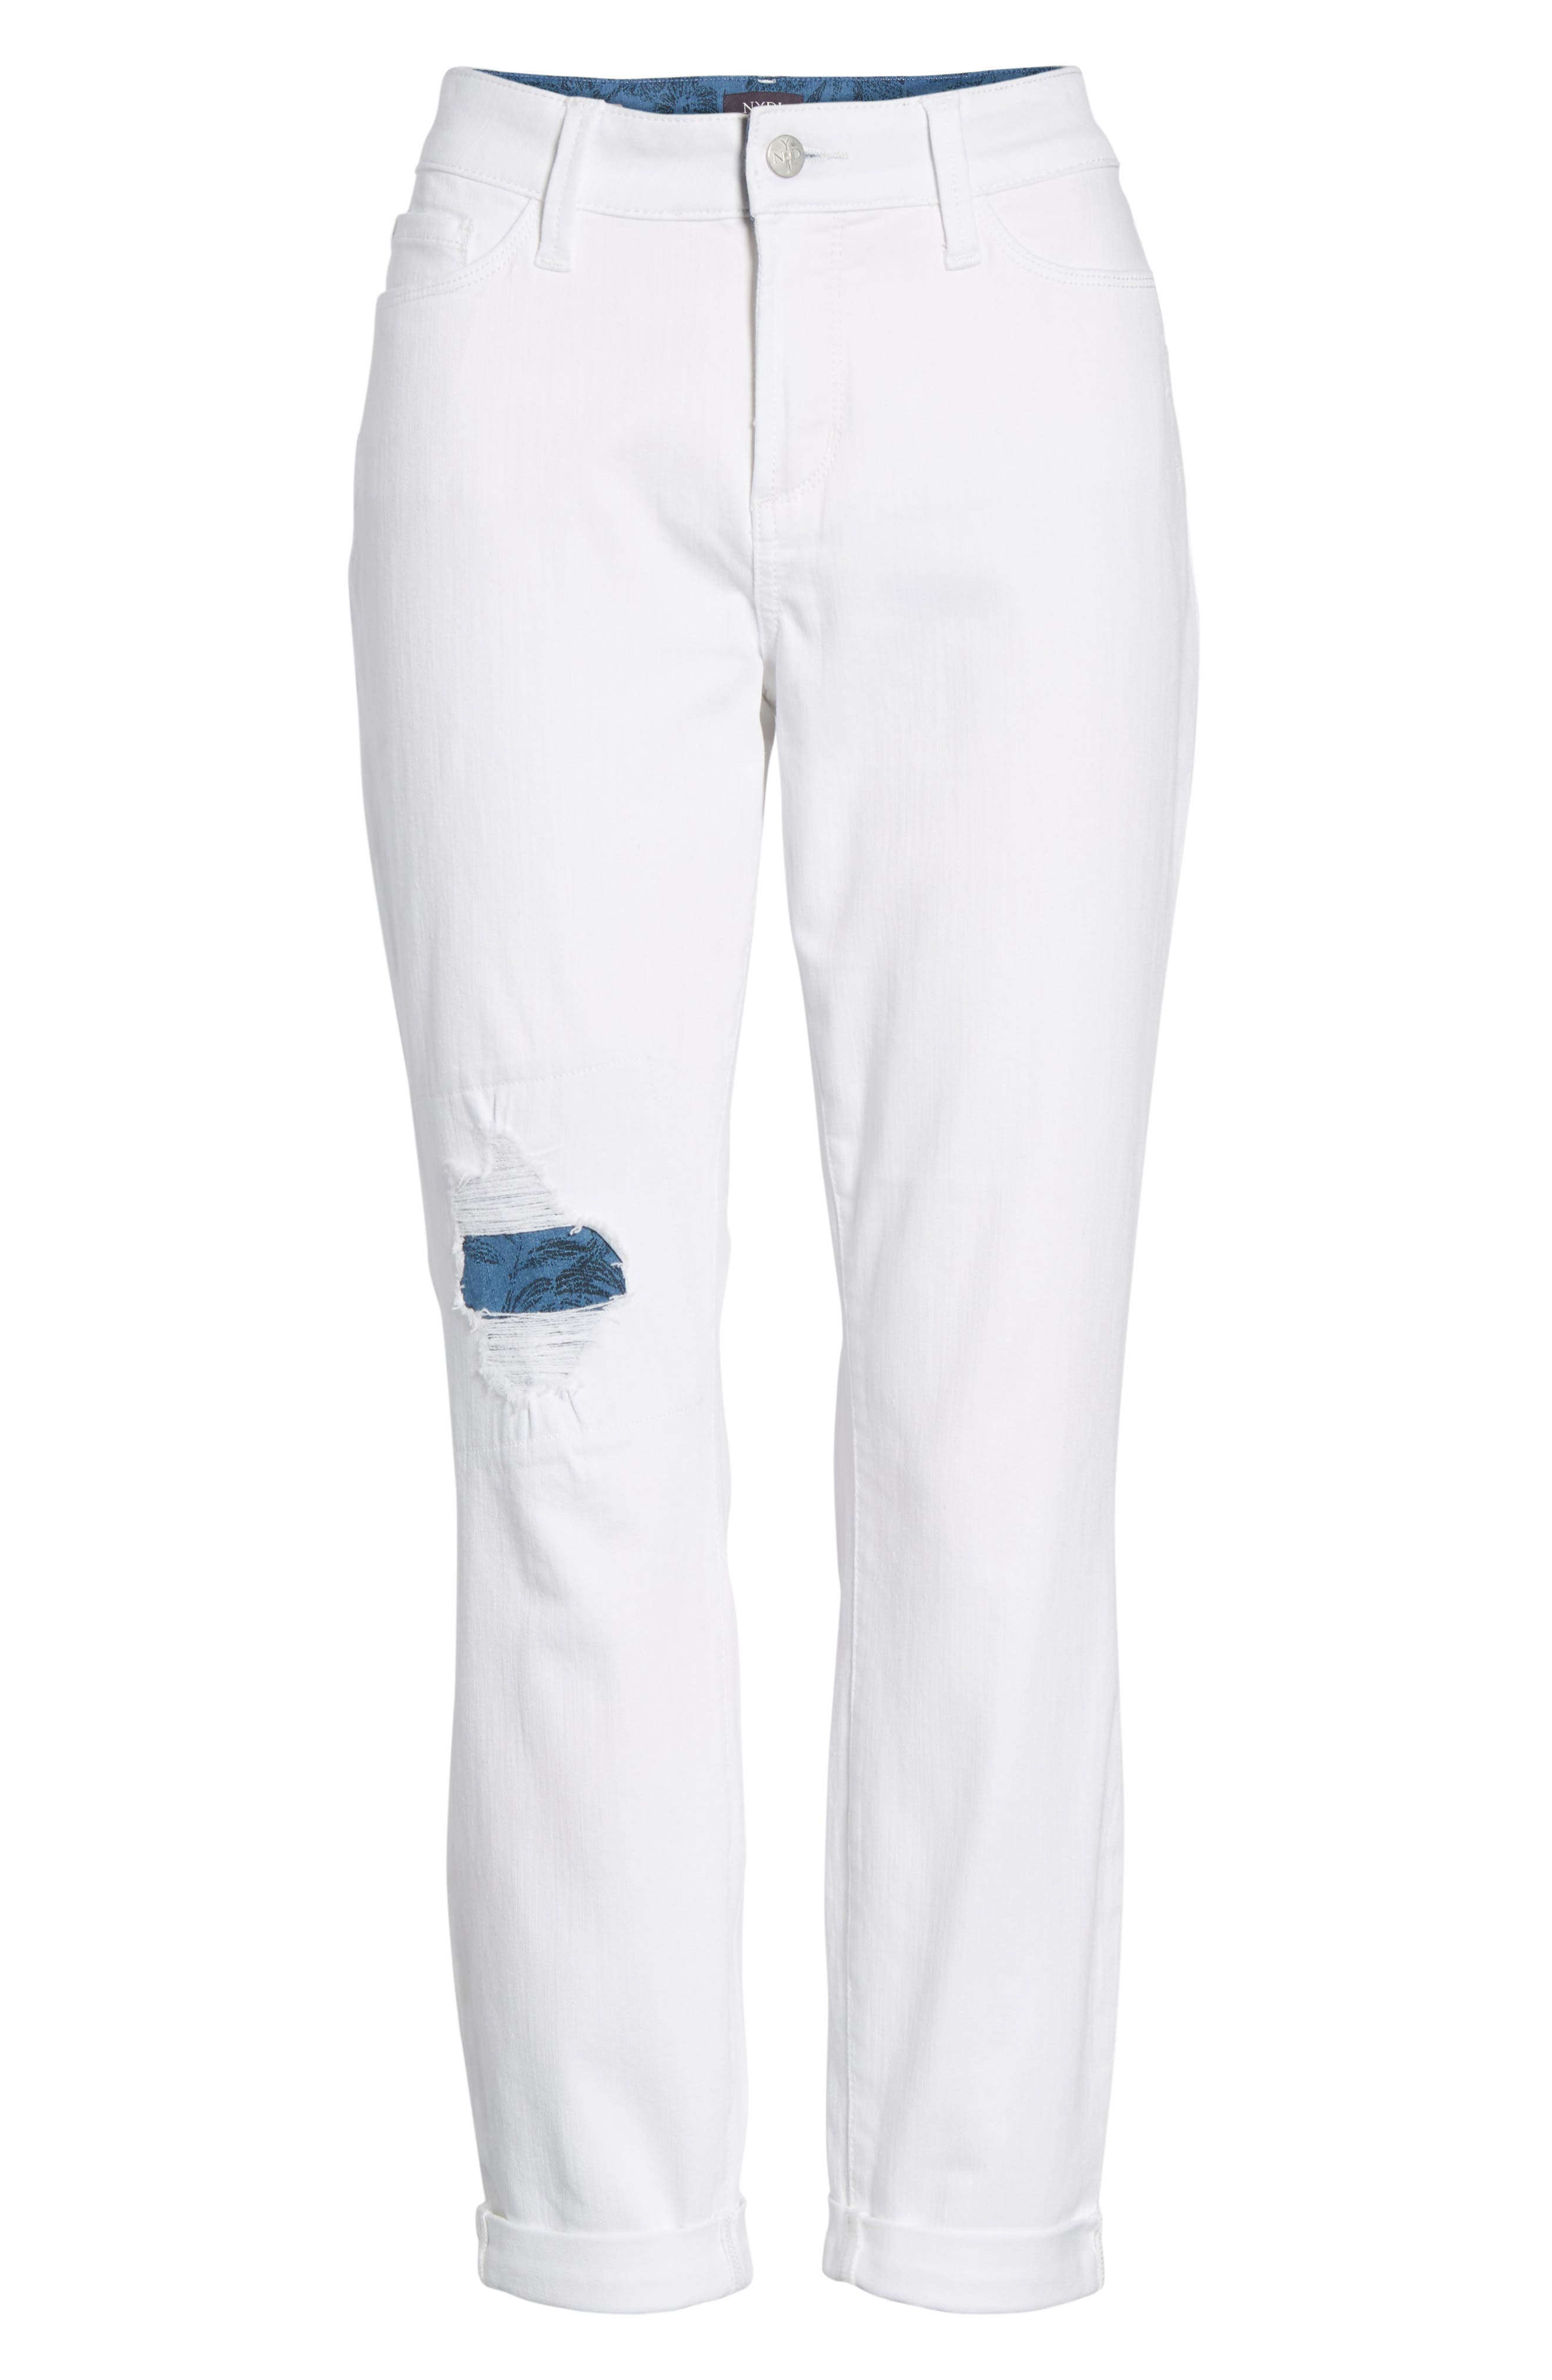 Ripped Stretch Ankle Jeans,                             Alternate thumbnail 6, color,                             115